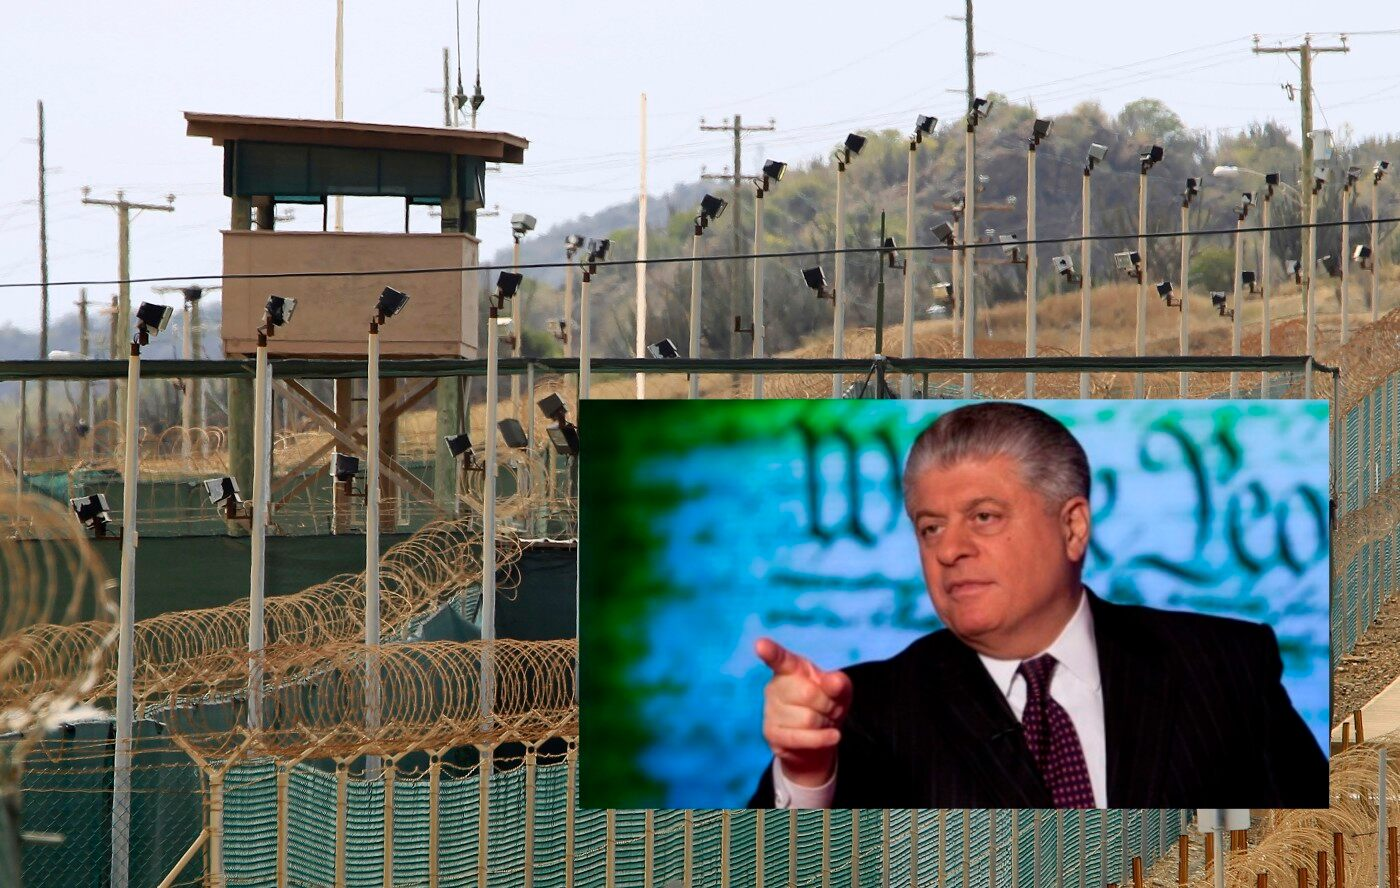 Final plans to close Guantanamo Bay get reaction